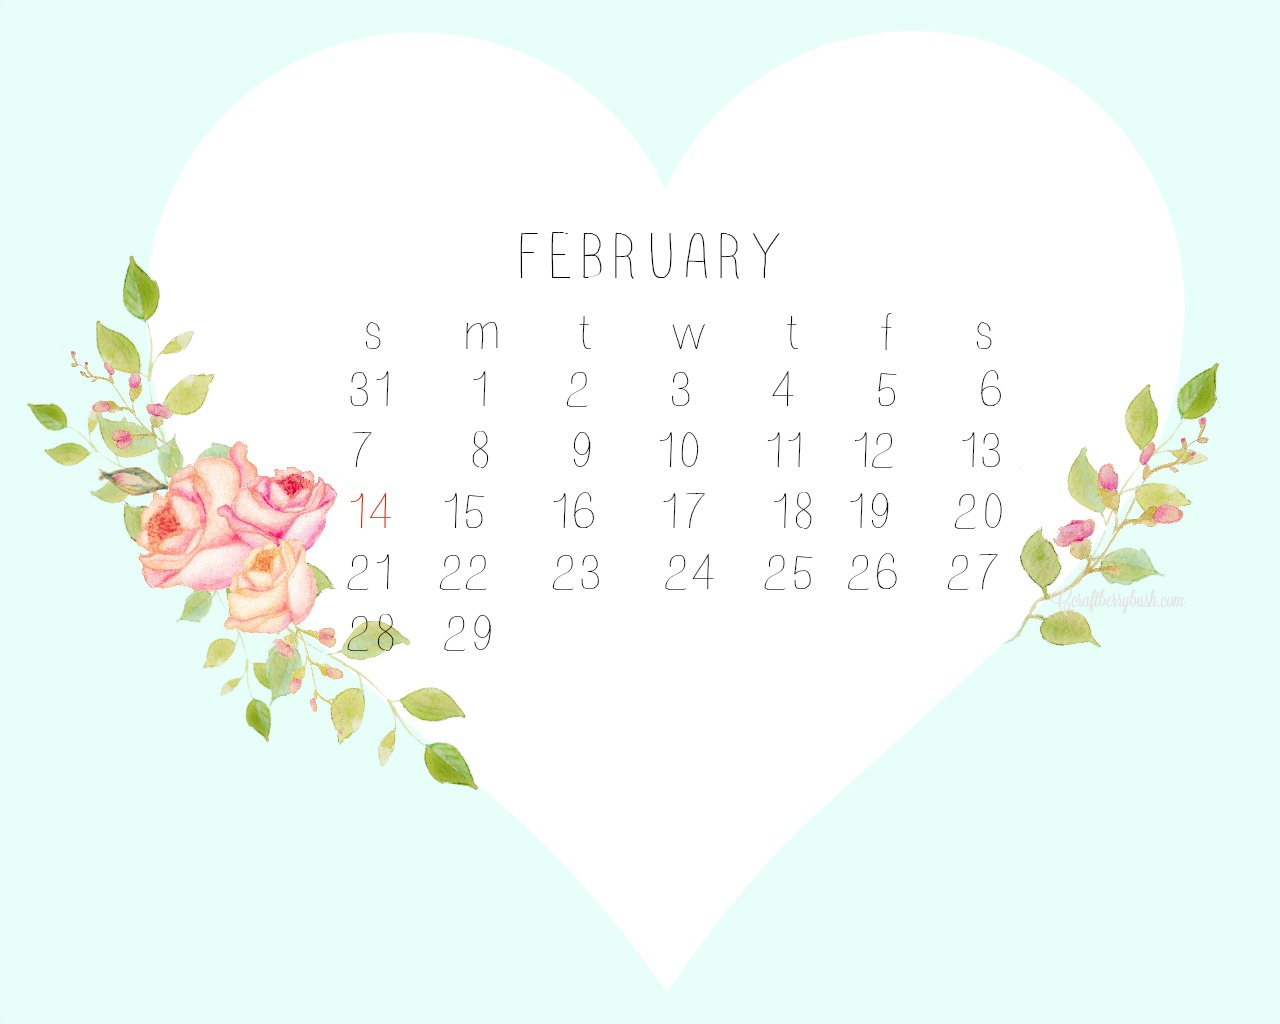 February desktopcalendarlightblue 1280x1024